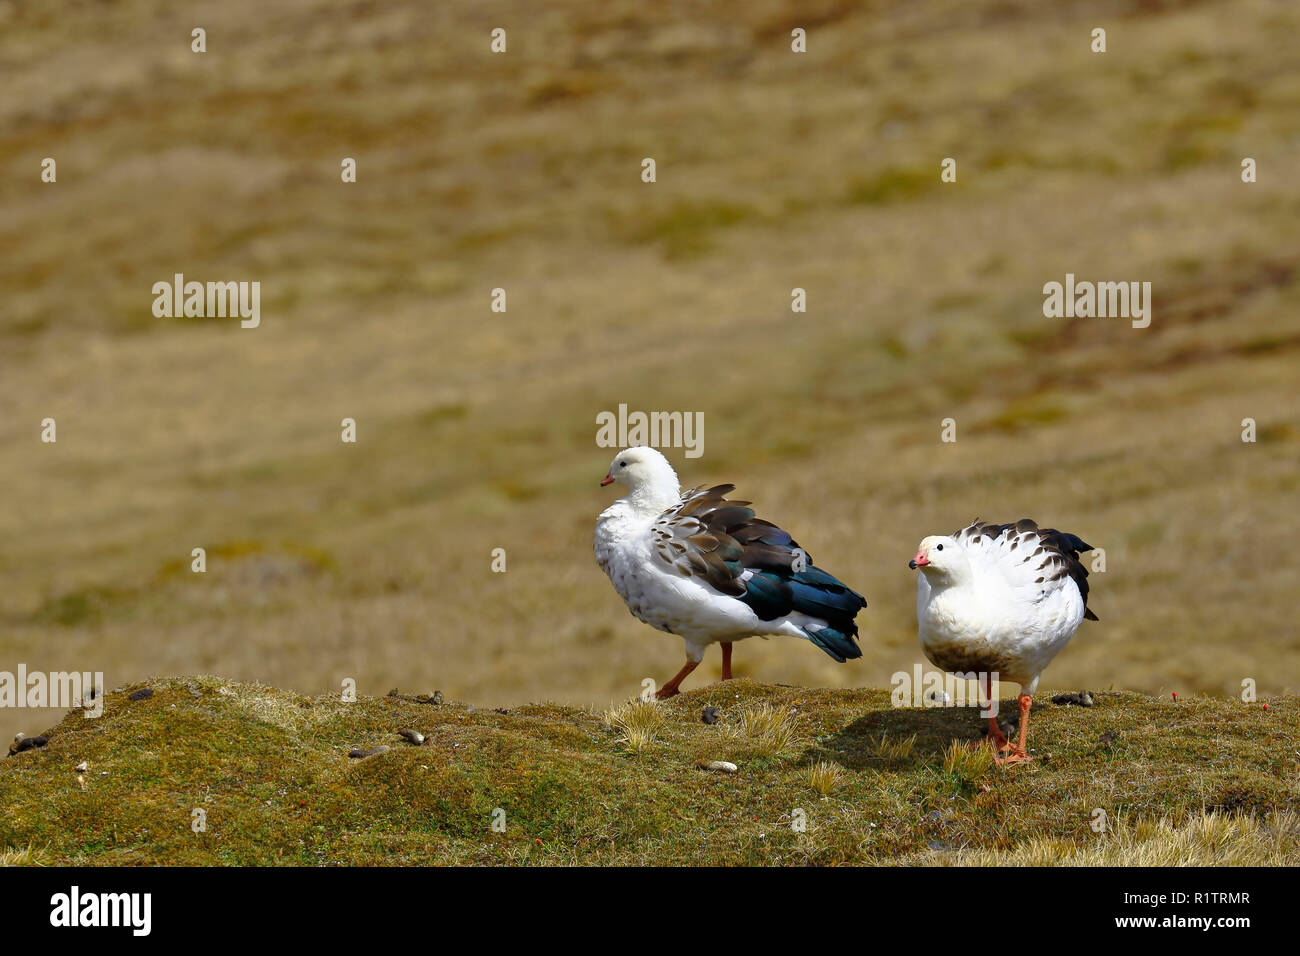 Pair of Andean goose (Chloephaga melanoptera) perched on the grassland in its natural environment in the puna. - Stock Image